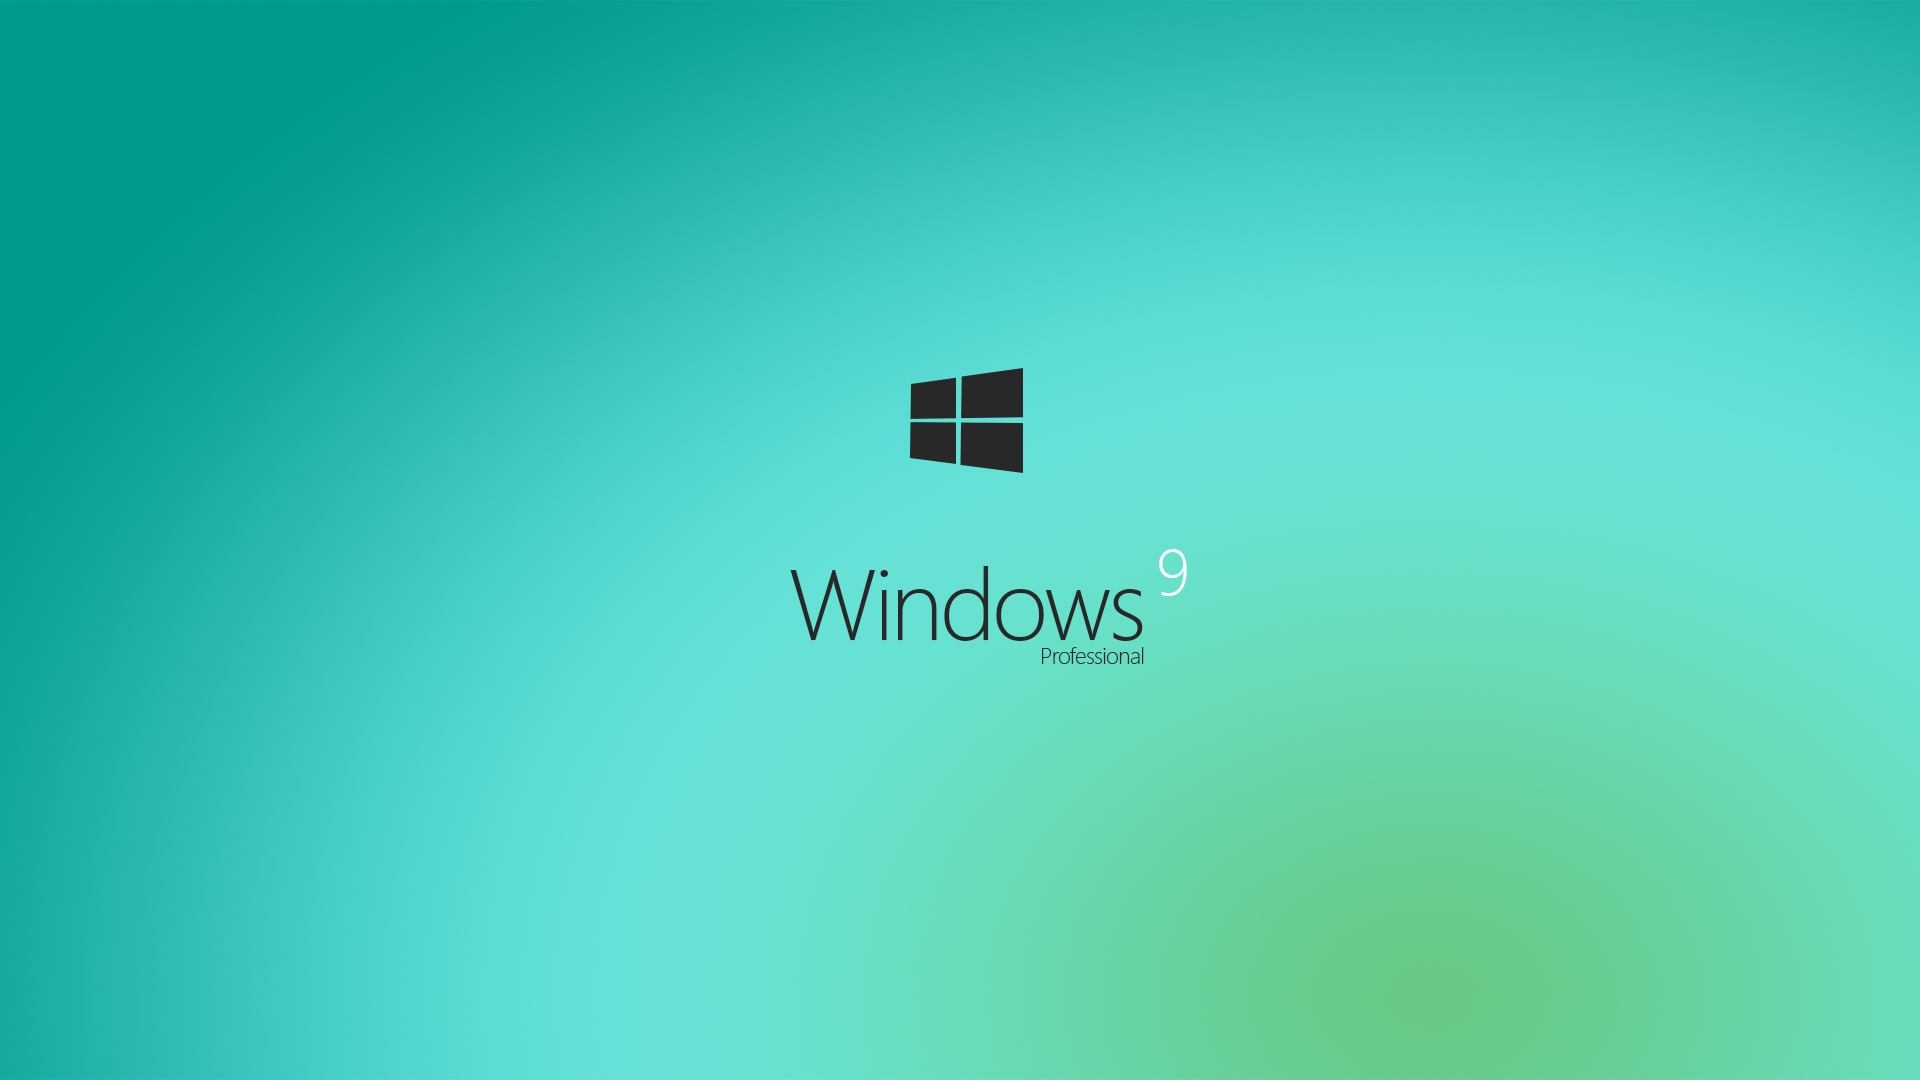 microsoft corporation msft windows 7 still powers